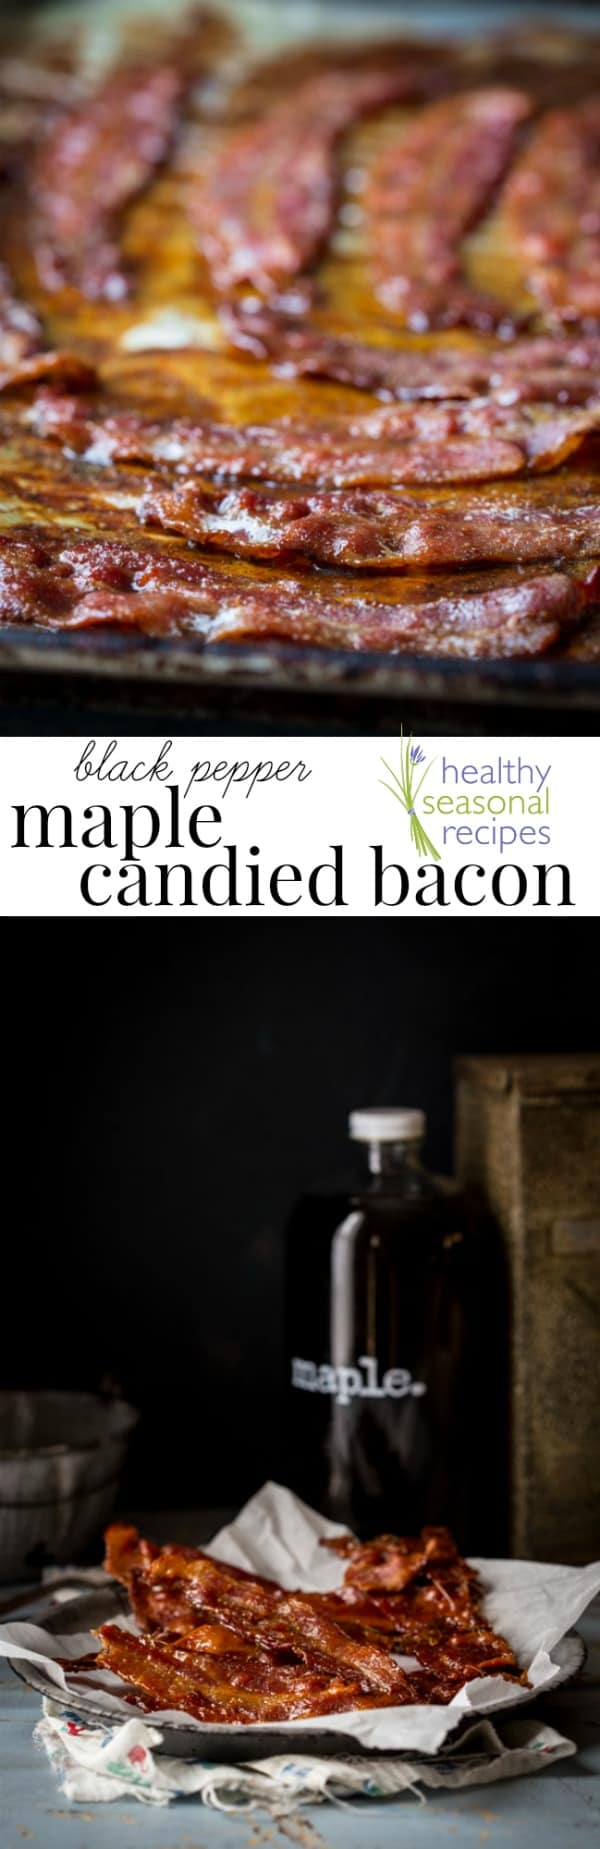 This maple candied bacon takes just 3 ingredients to make! Using the oven, pure maple syrup, & parchment paper are key to getting foolproof results. #bacon #maple #candied #brunch #breakfast #candiedbacon #pepper #blackpepper #3ingredients #easy